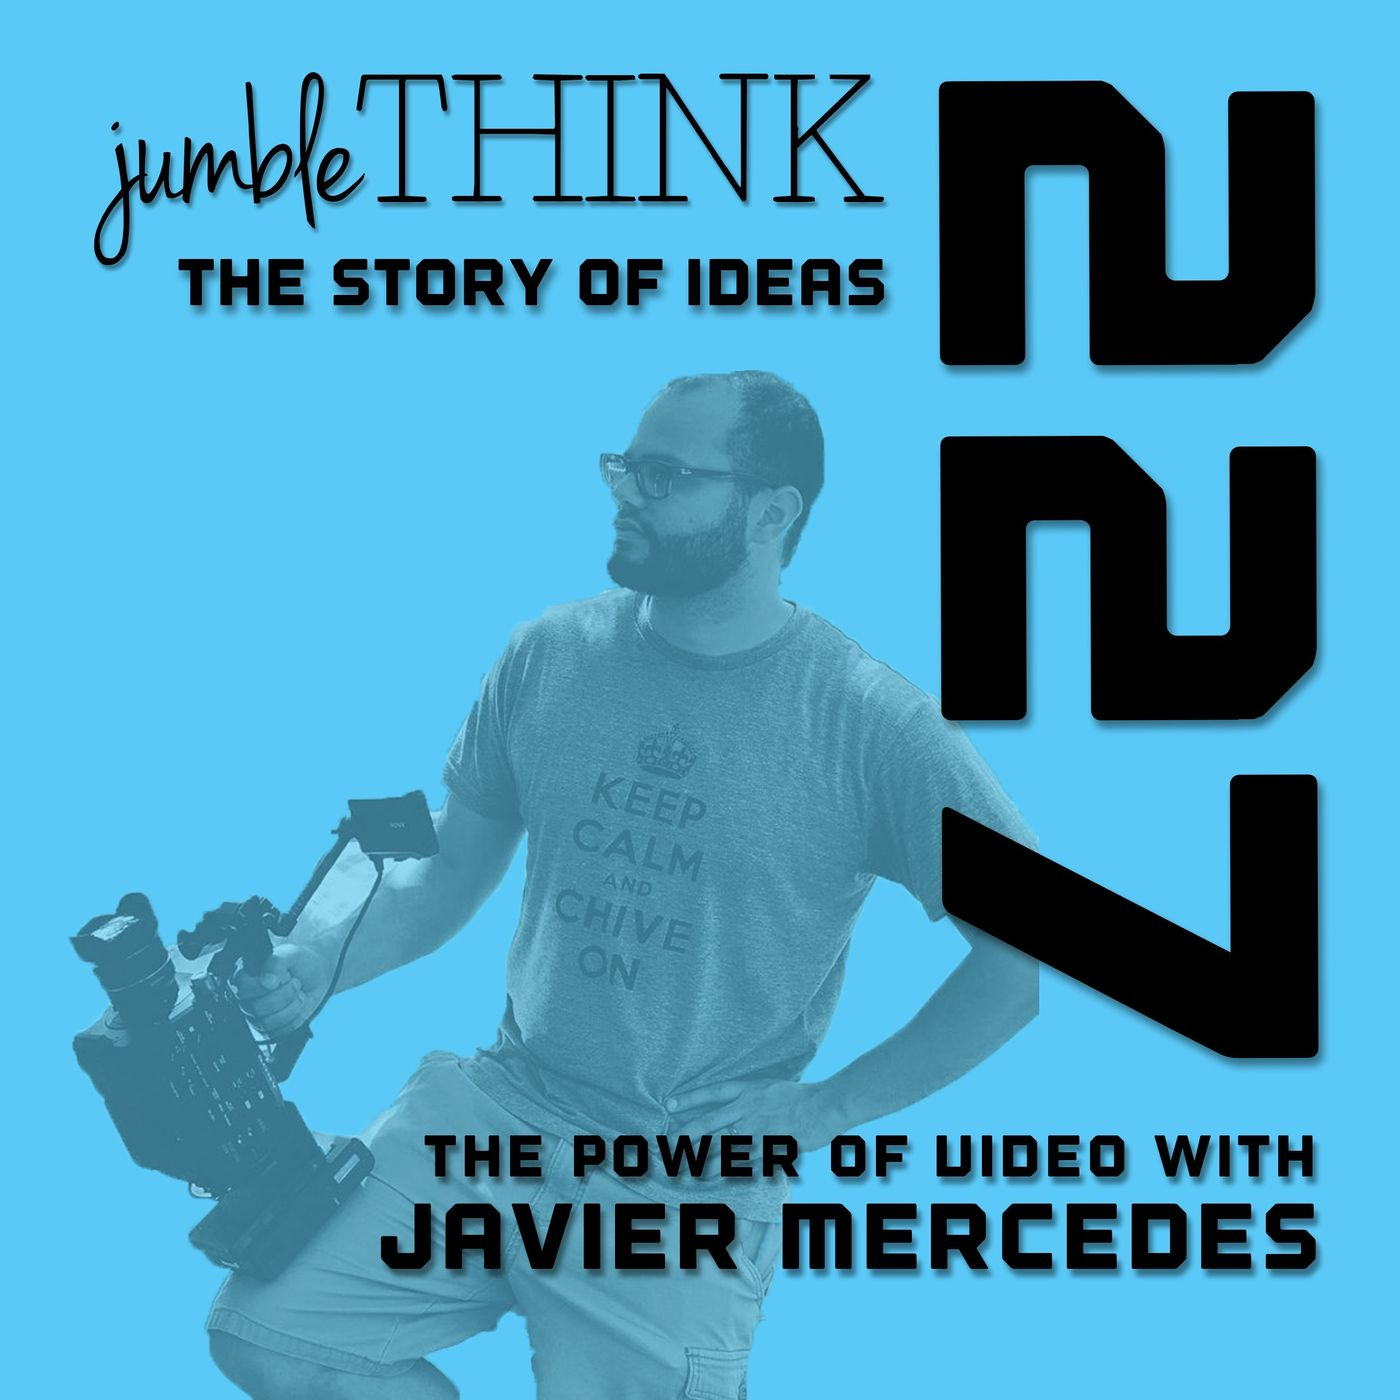 The Power of Video with Javier Mercedes